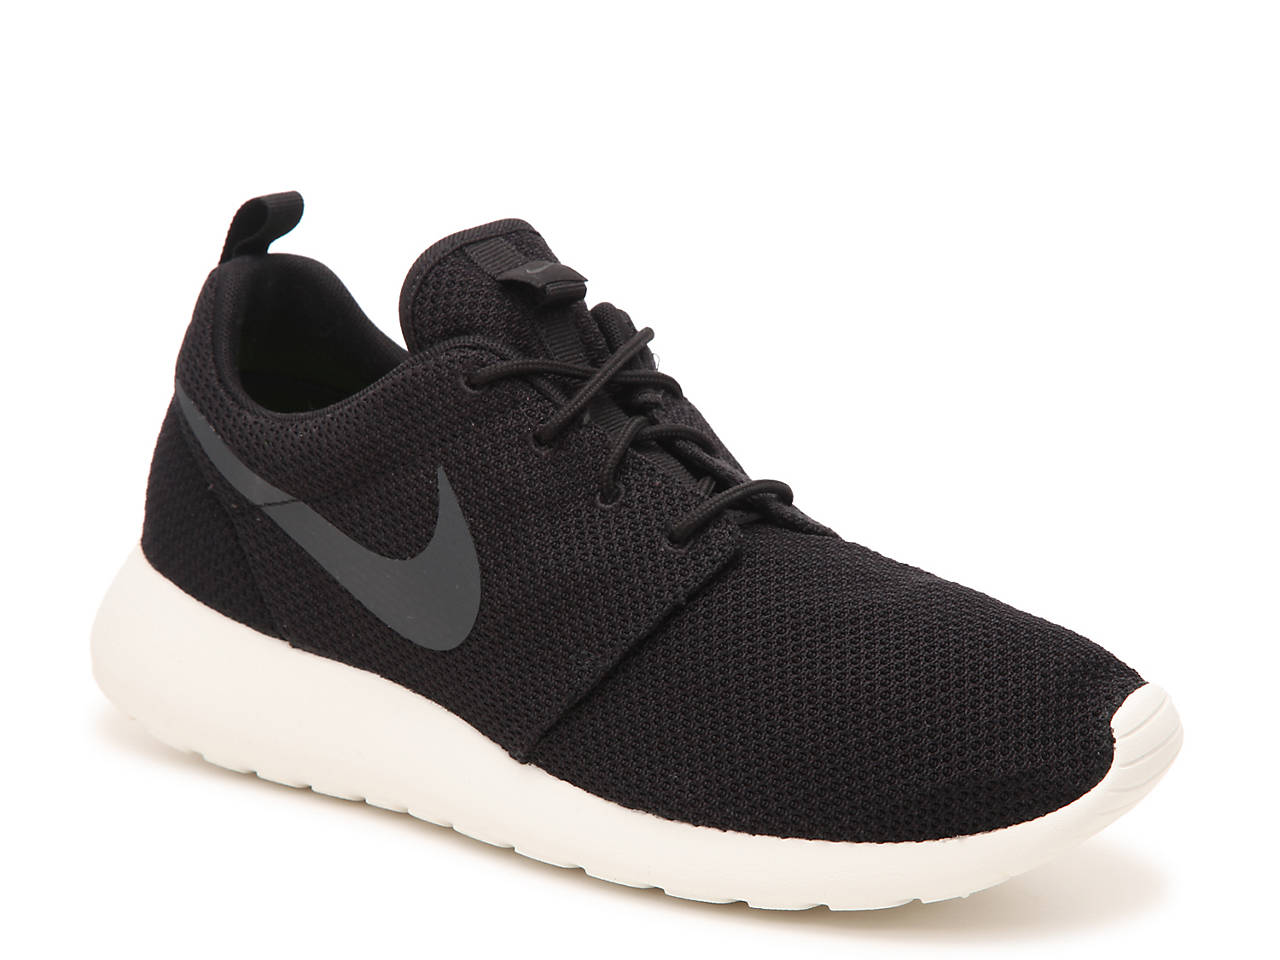 finest selection 03e57 2b742 Roshe One Sneaker - Men's